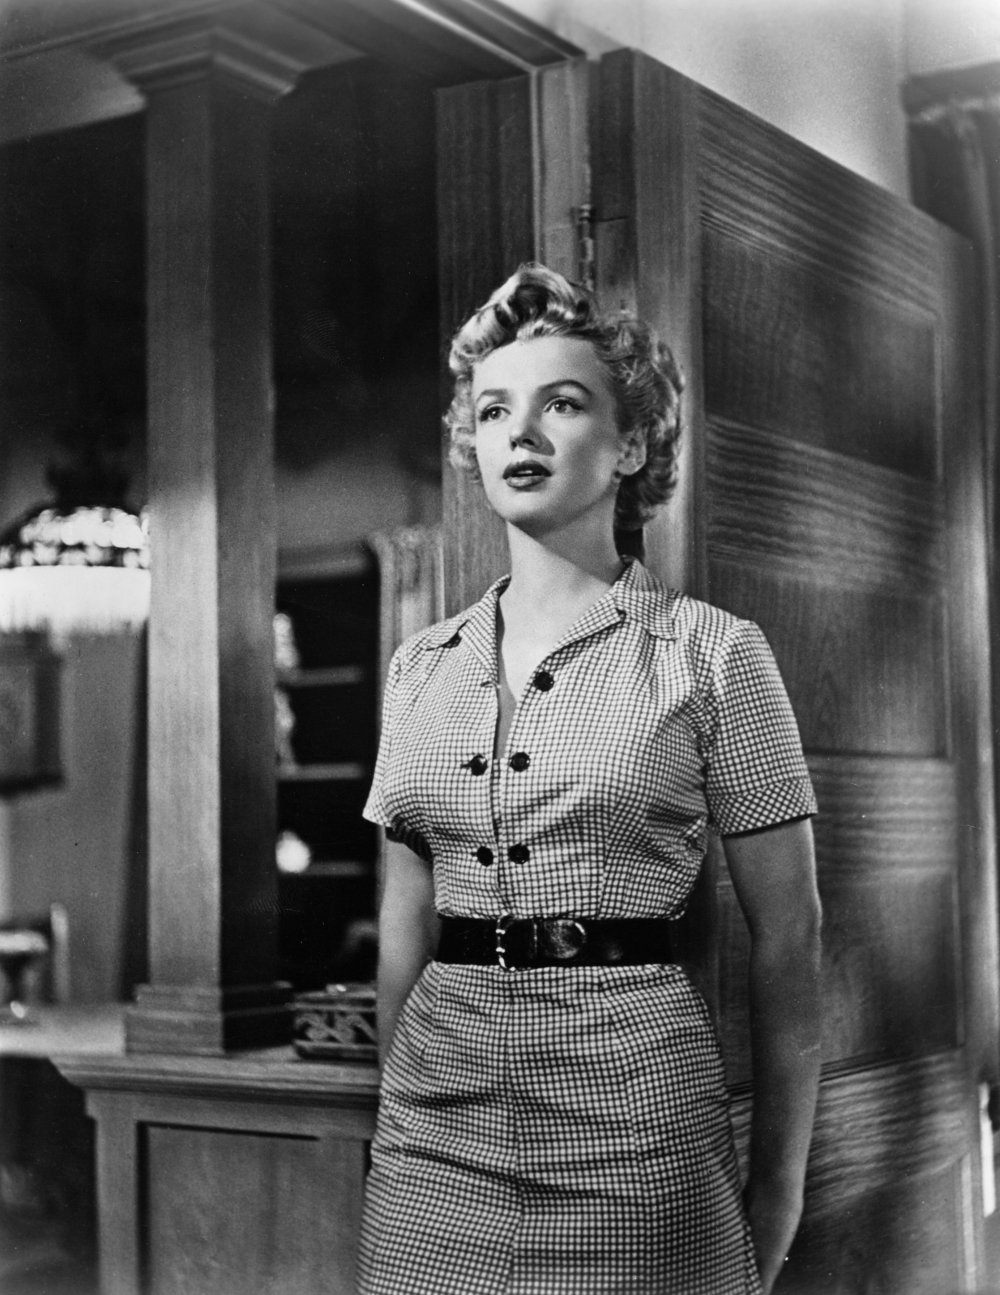 Monroe in Clash by Night (1952)